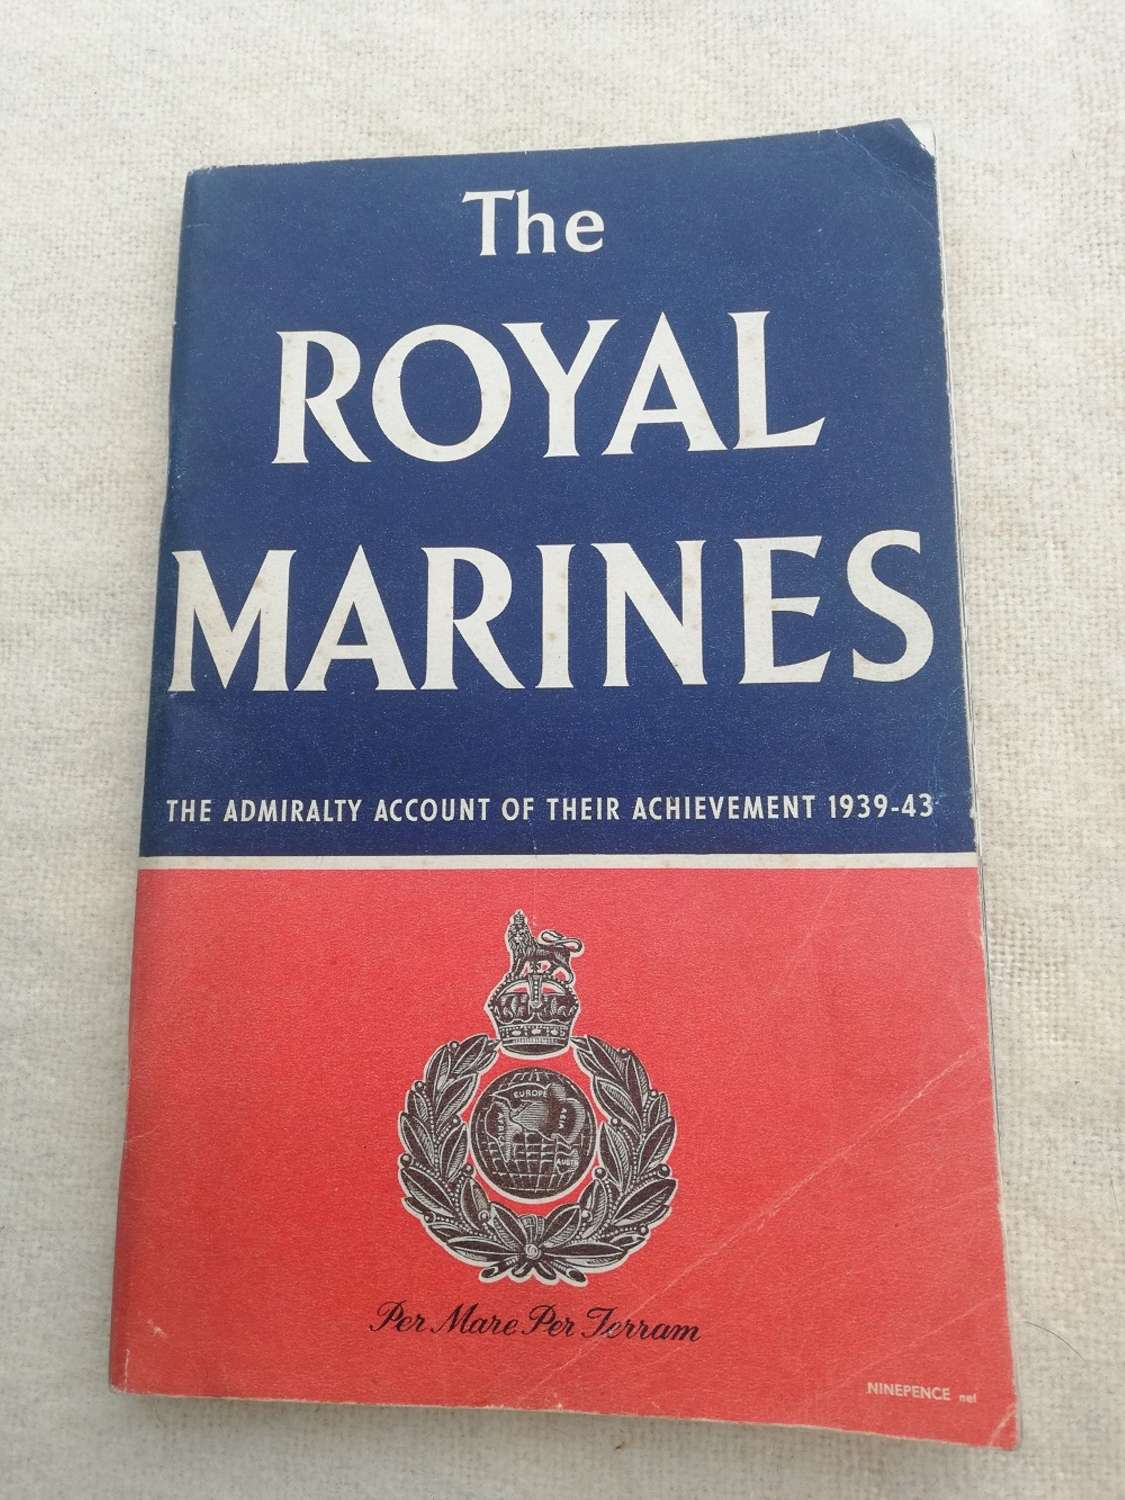 'The Royal Marines' HMSO Book 1944